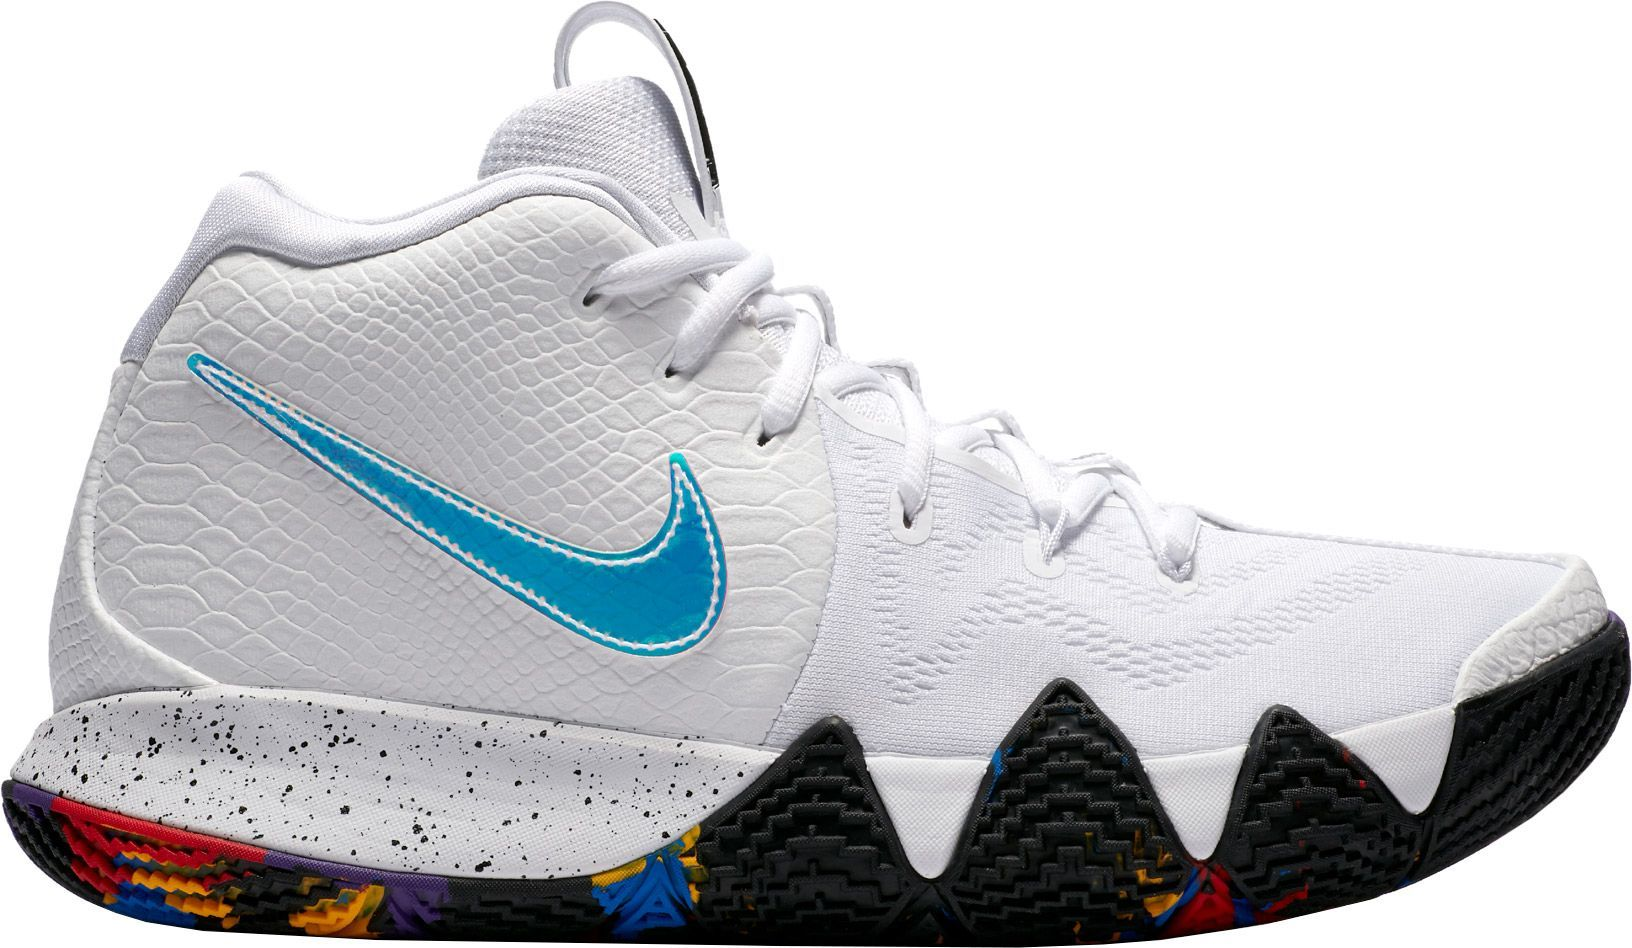 official photos d4b67 b28fe Nike Men's Kyrie 4 Basketball Shoes, Size: 12.0, White ...